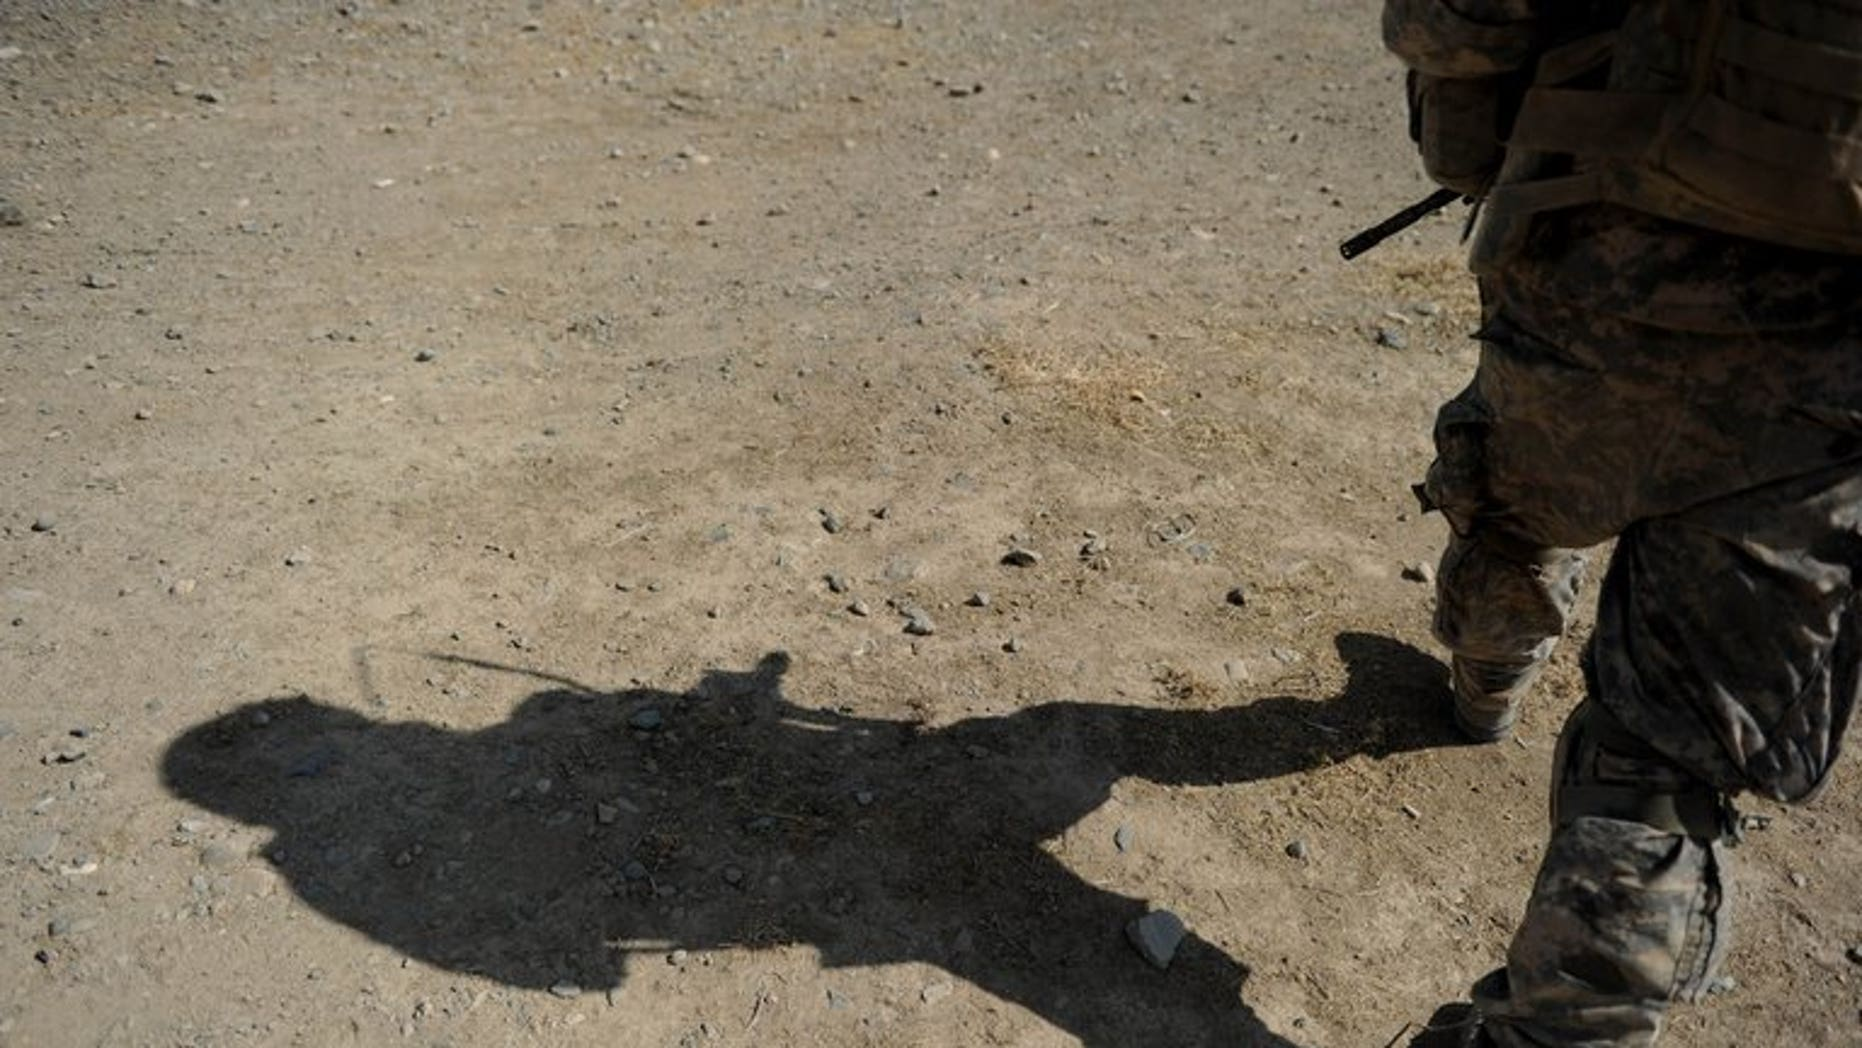 A US Soldier serving with the NATO-led mission in Afghanistan in Kandahar province on August 6, 2010. A man wearing Afghan security forces uniform shot dead three NATO-led soldiers on Saturday in the eastern part of the country, the coalition said.